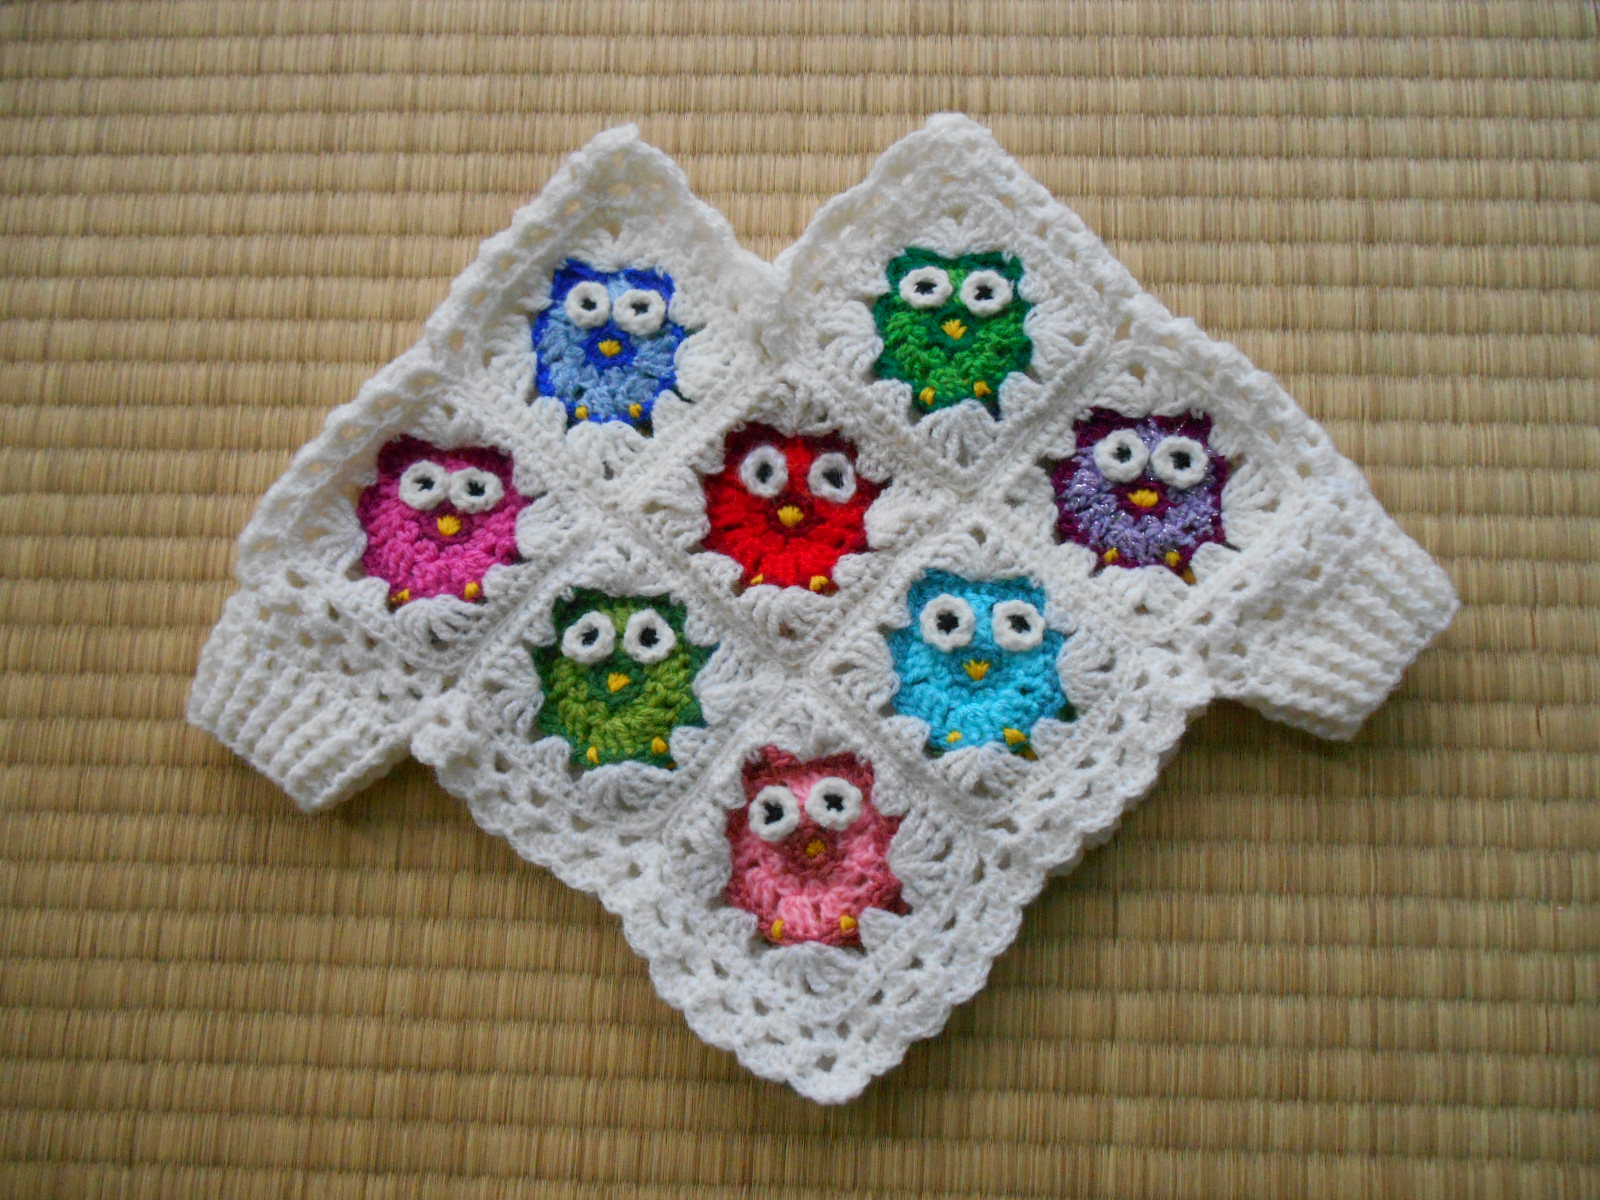 All Crochet Com : first did the owl crochet parts, doing every owl twice so front and ...